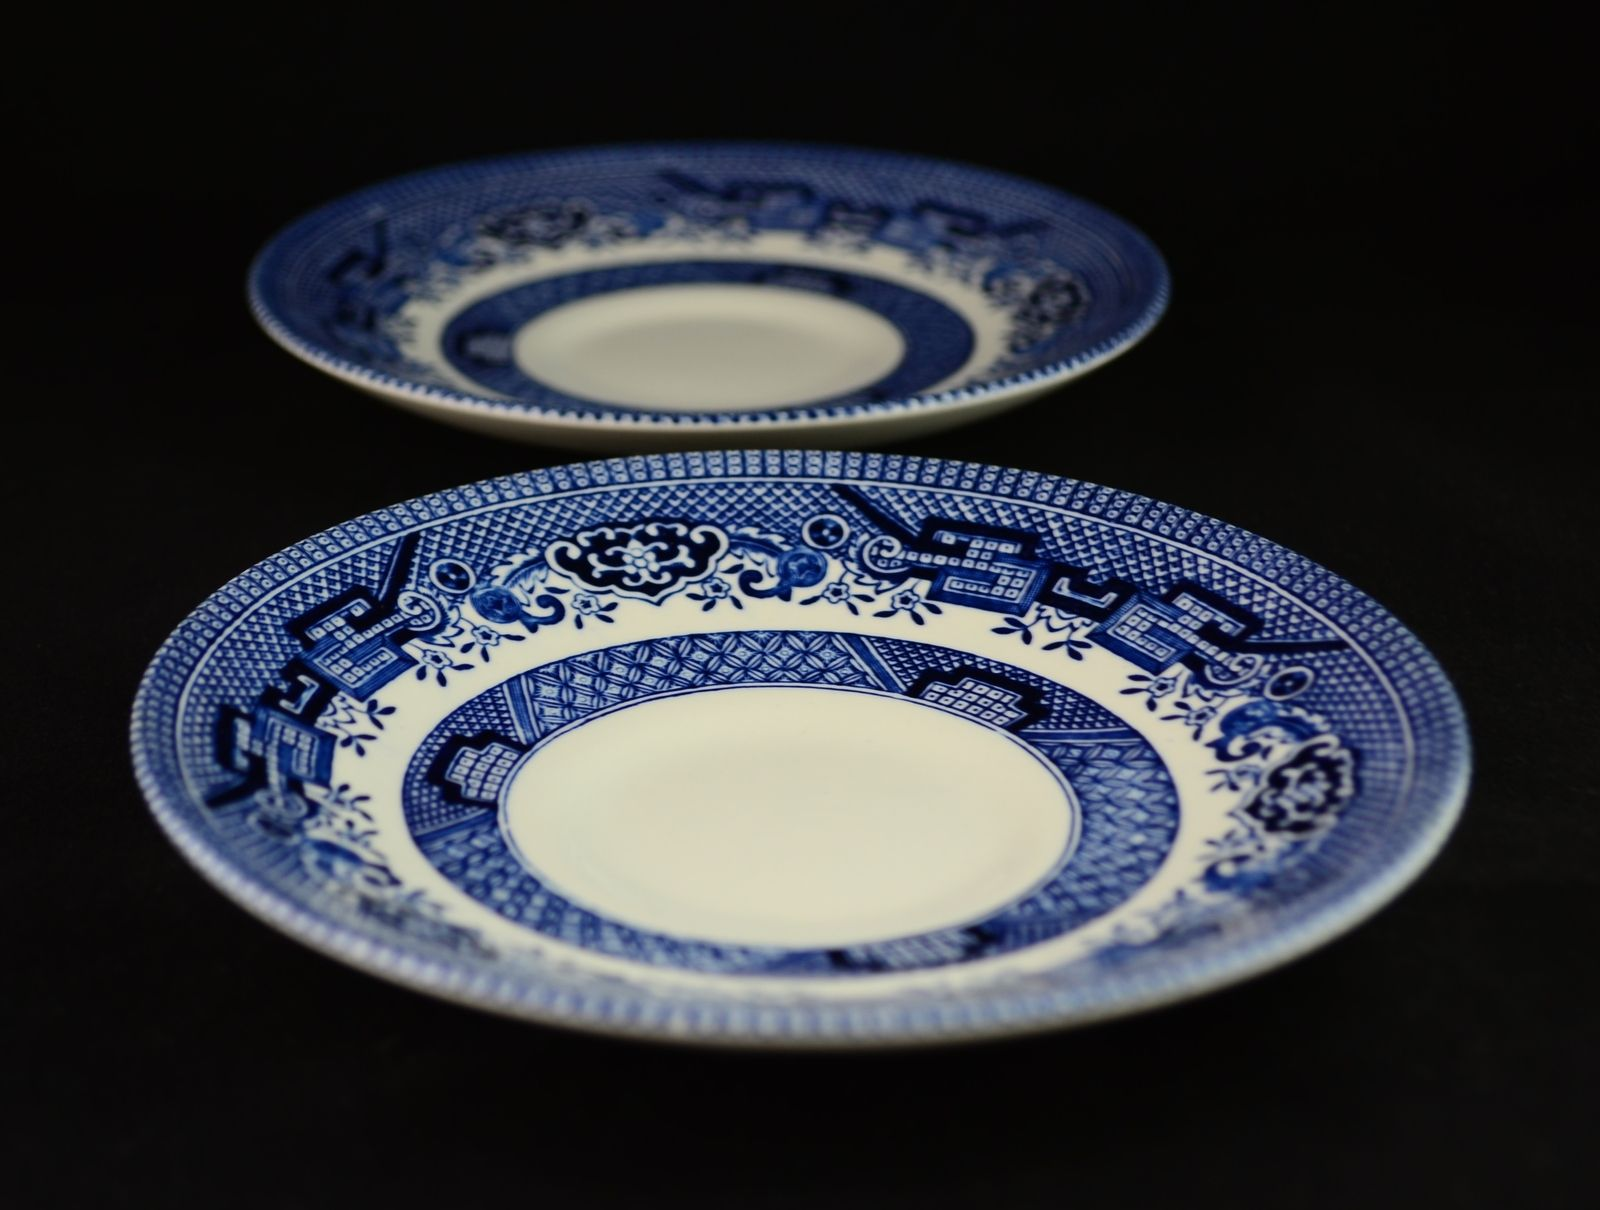 Pair of Churchill Blue Willow China Saucer Plates England - Displayed only #deals & Pair of Churchill Blue Willow China Saucers England - Displayed only ...